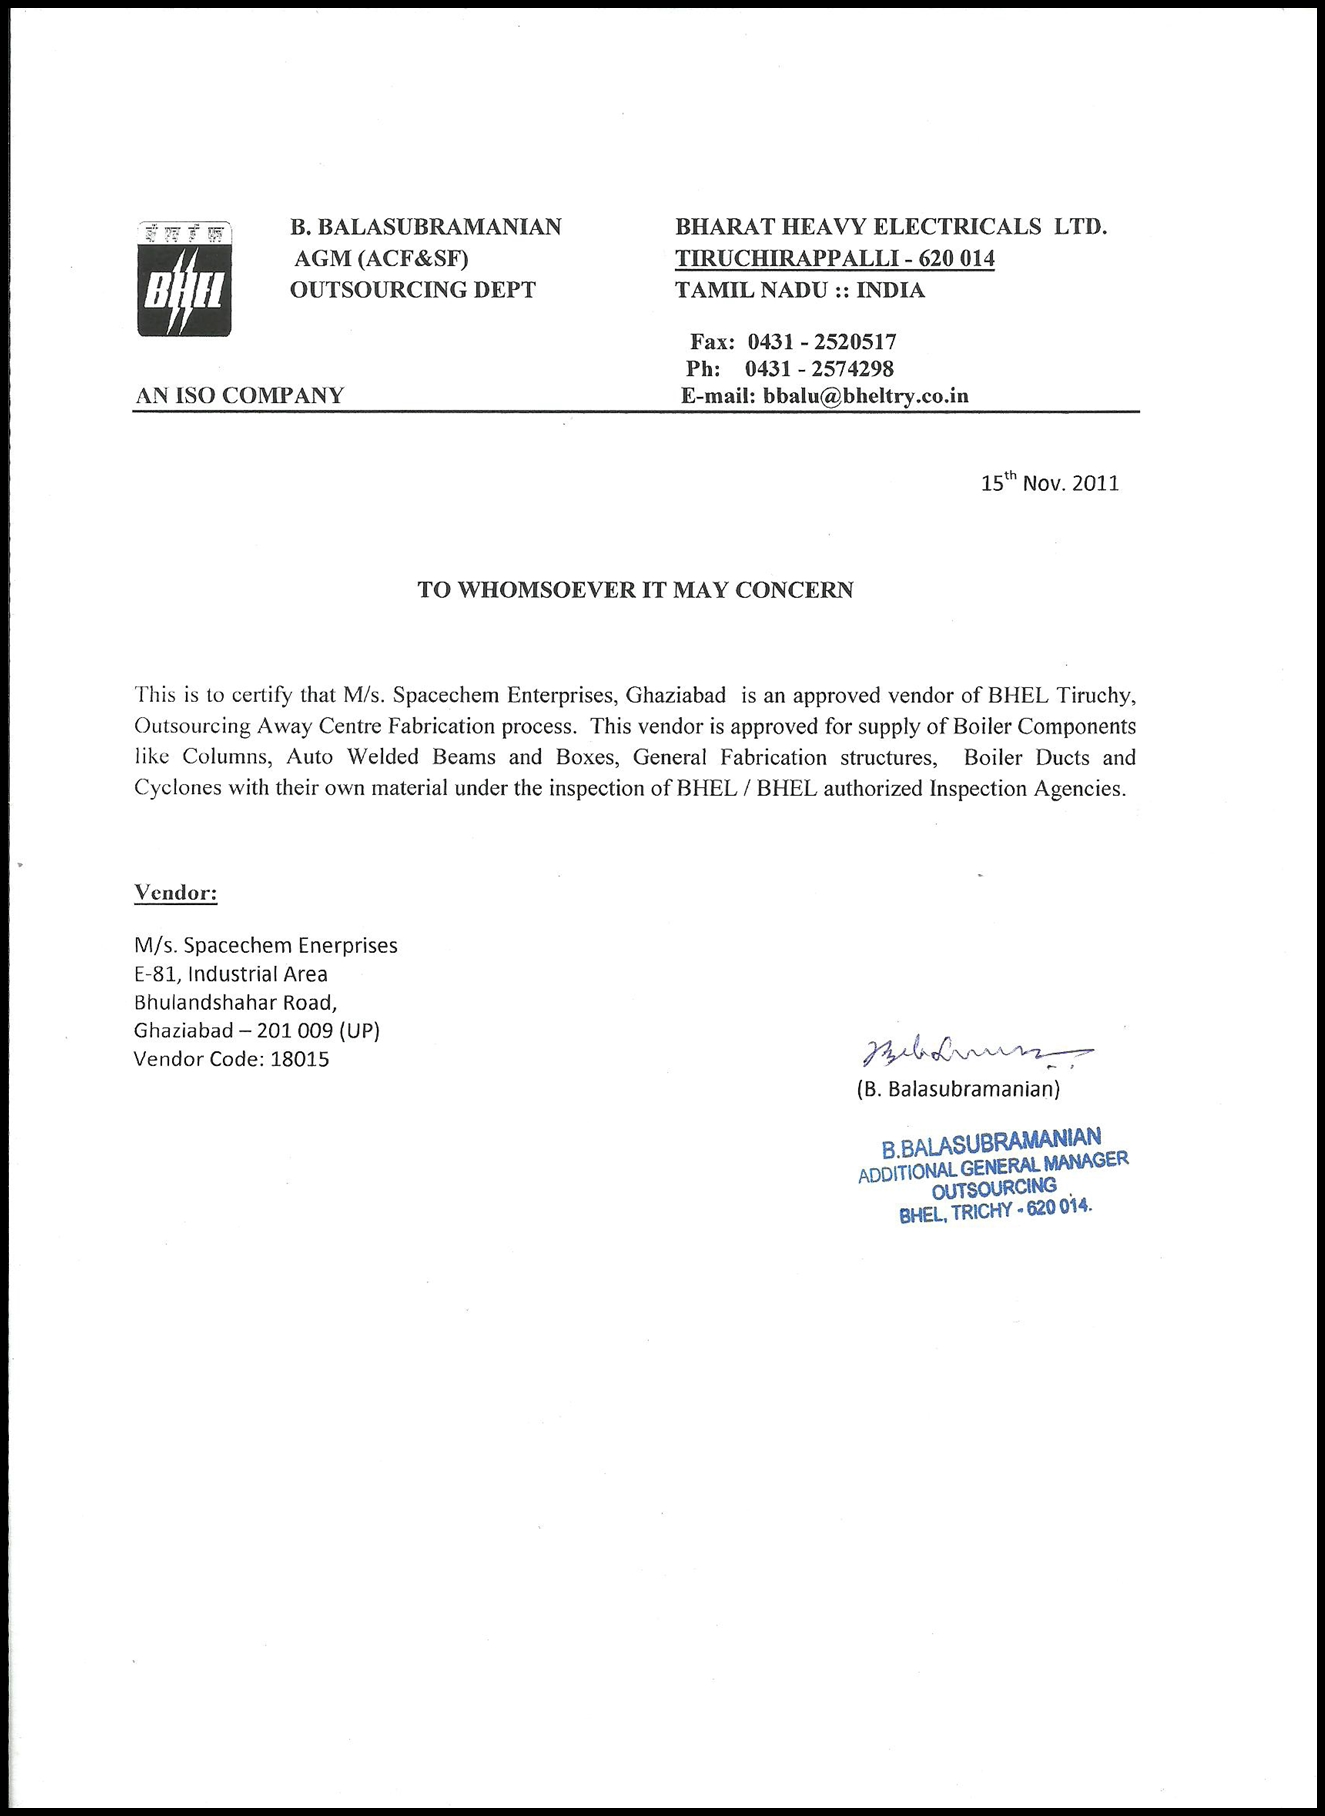 Approved Vendor of BHEL for Supply of Boiler components